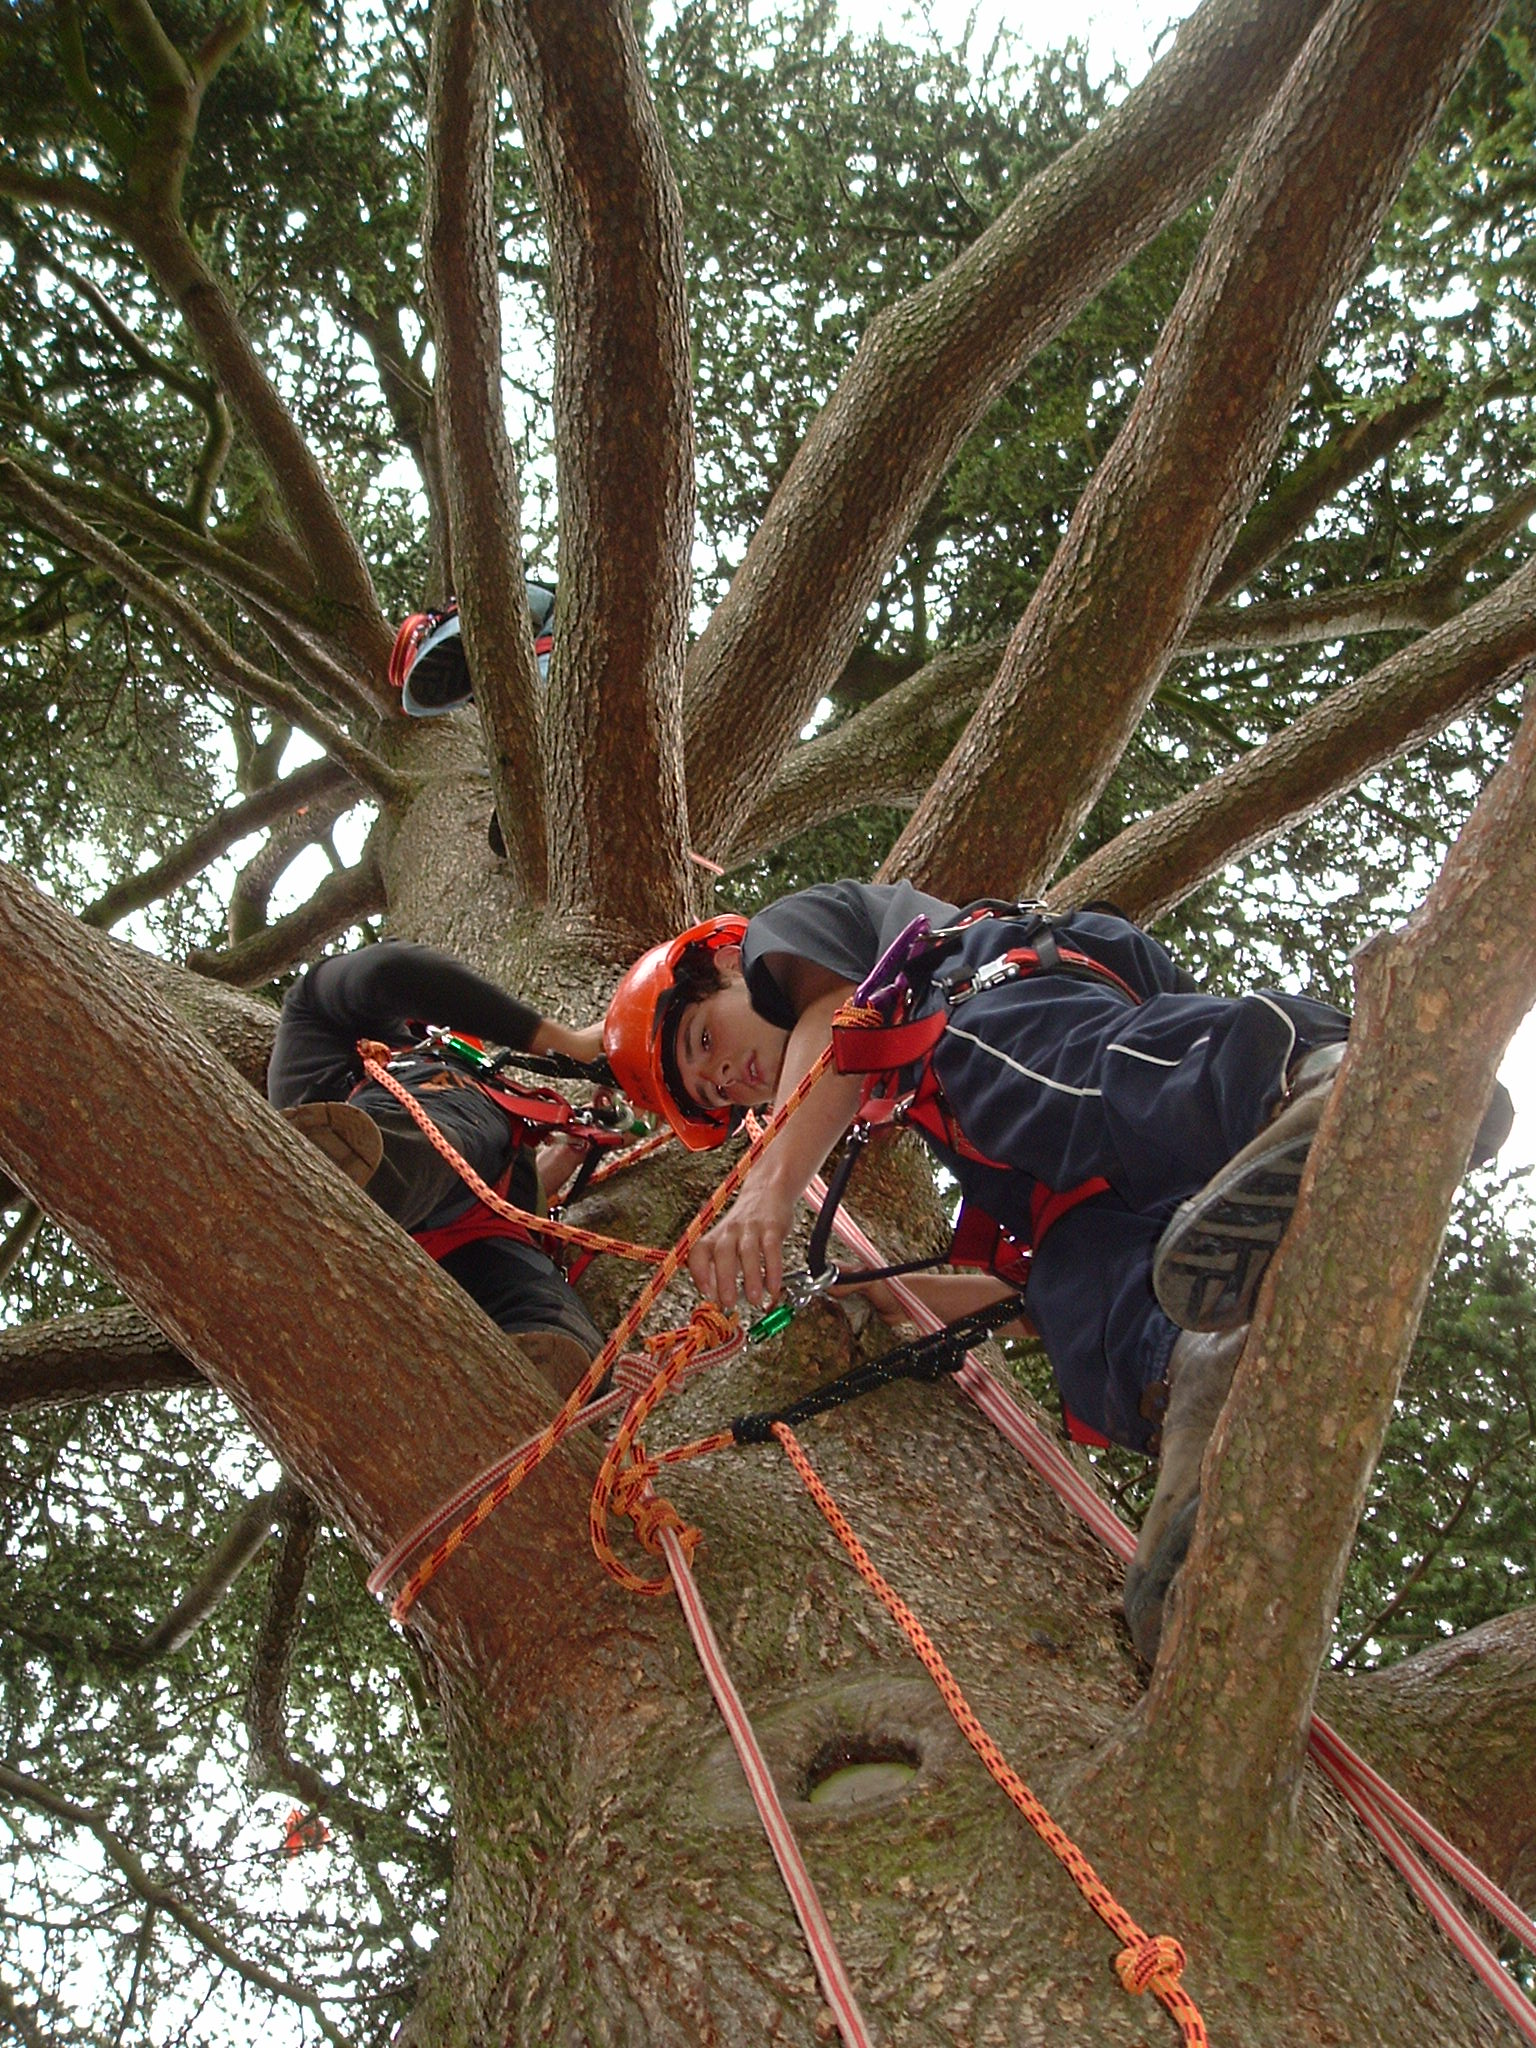 Tree climbing and arboriculture rescue demonstrations is a new feature at the Kenilworth Show